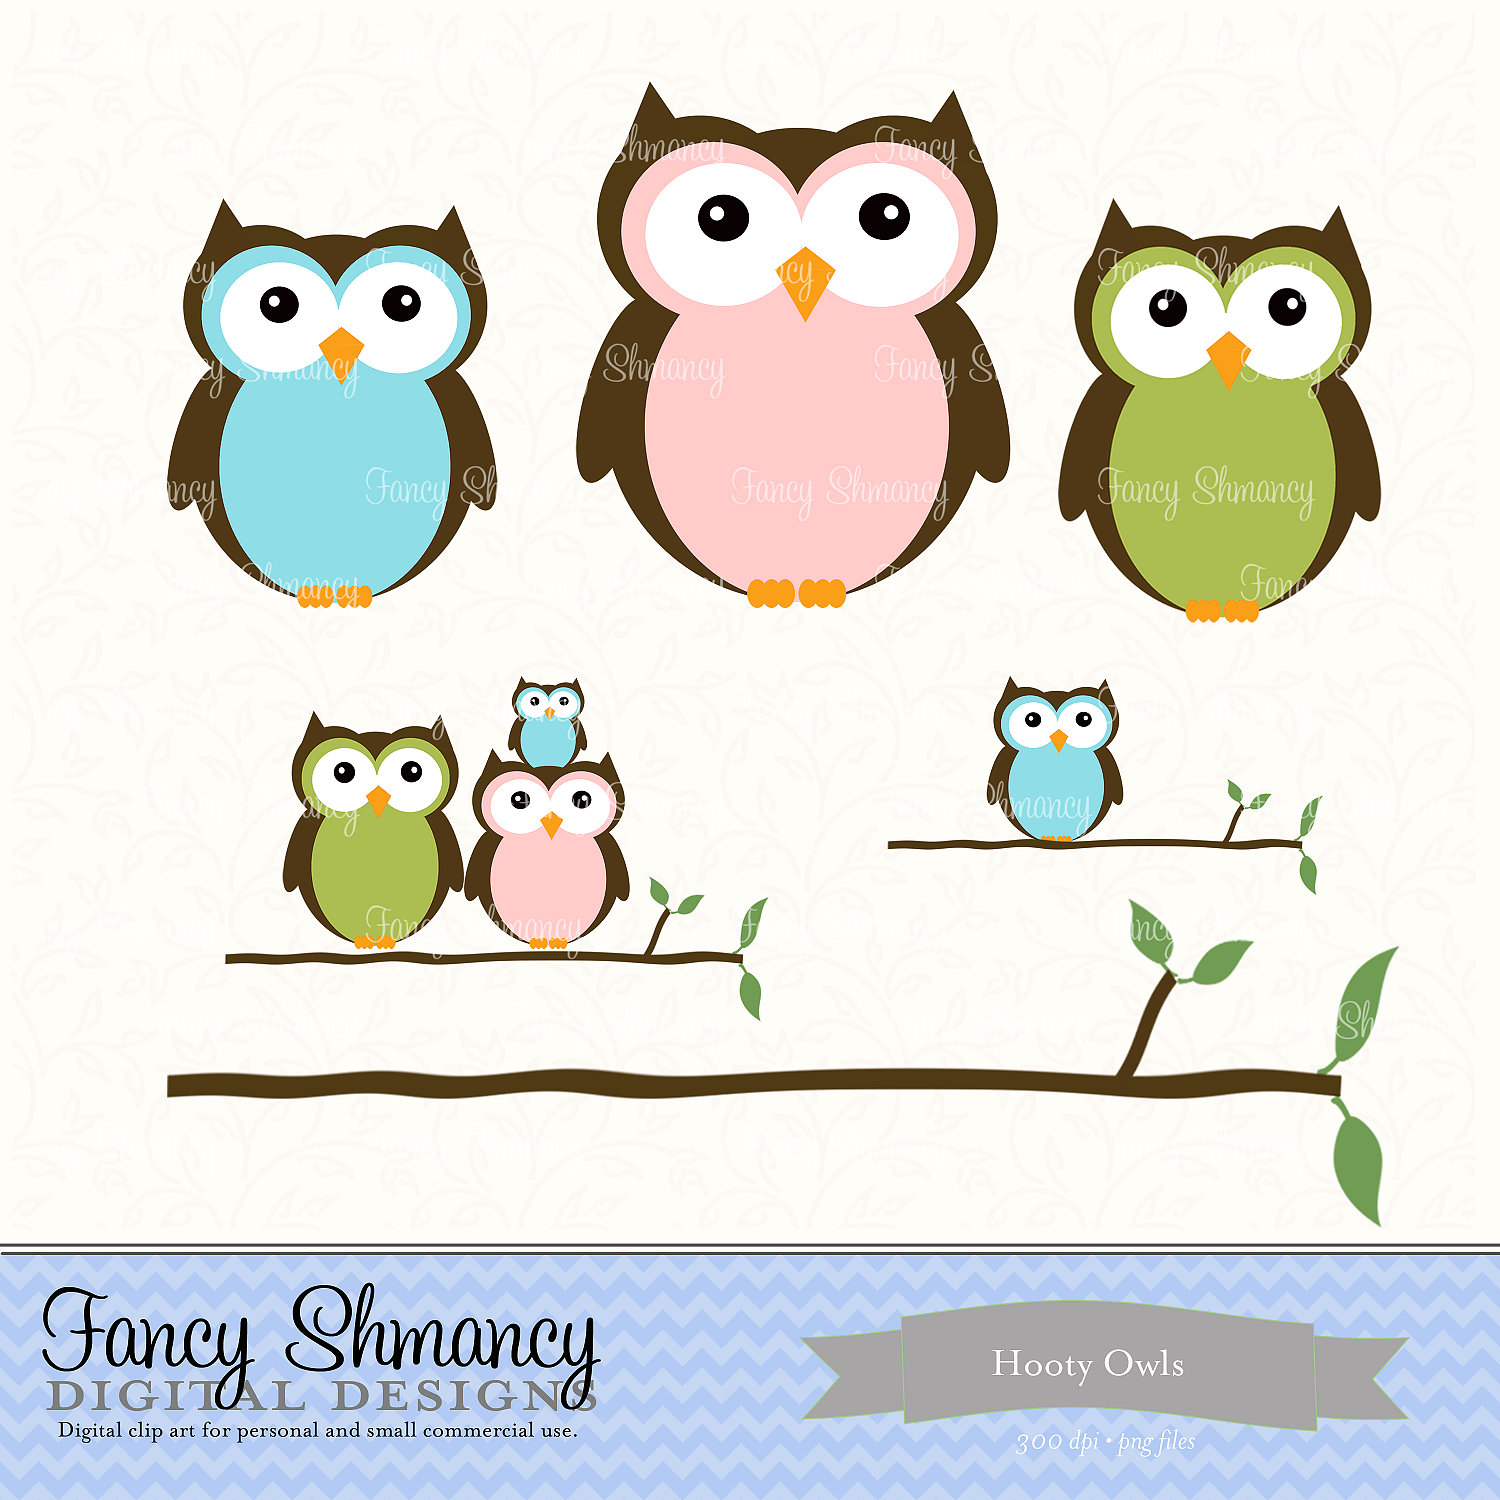 Free diy girl baby showers owls clipart graphic black and white library Free diy girl baby showers owls clipart - ClipartFest graphic black and white library